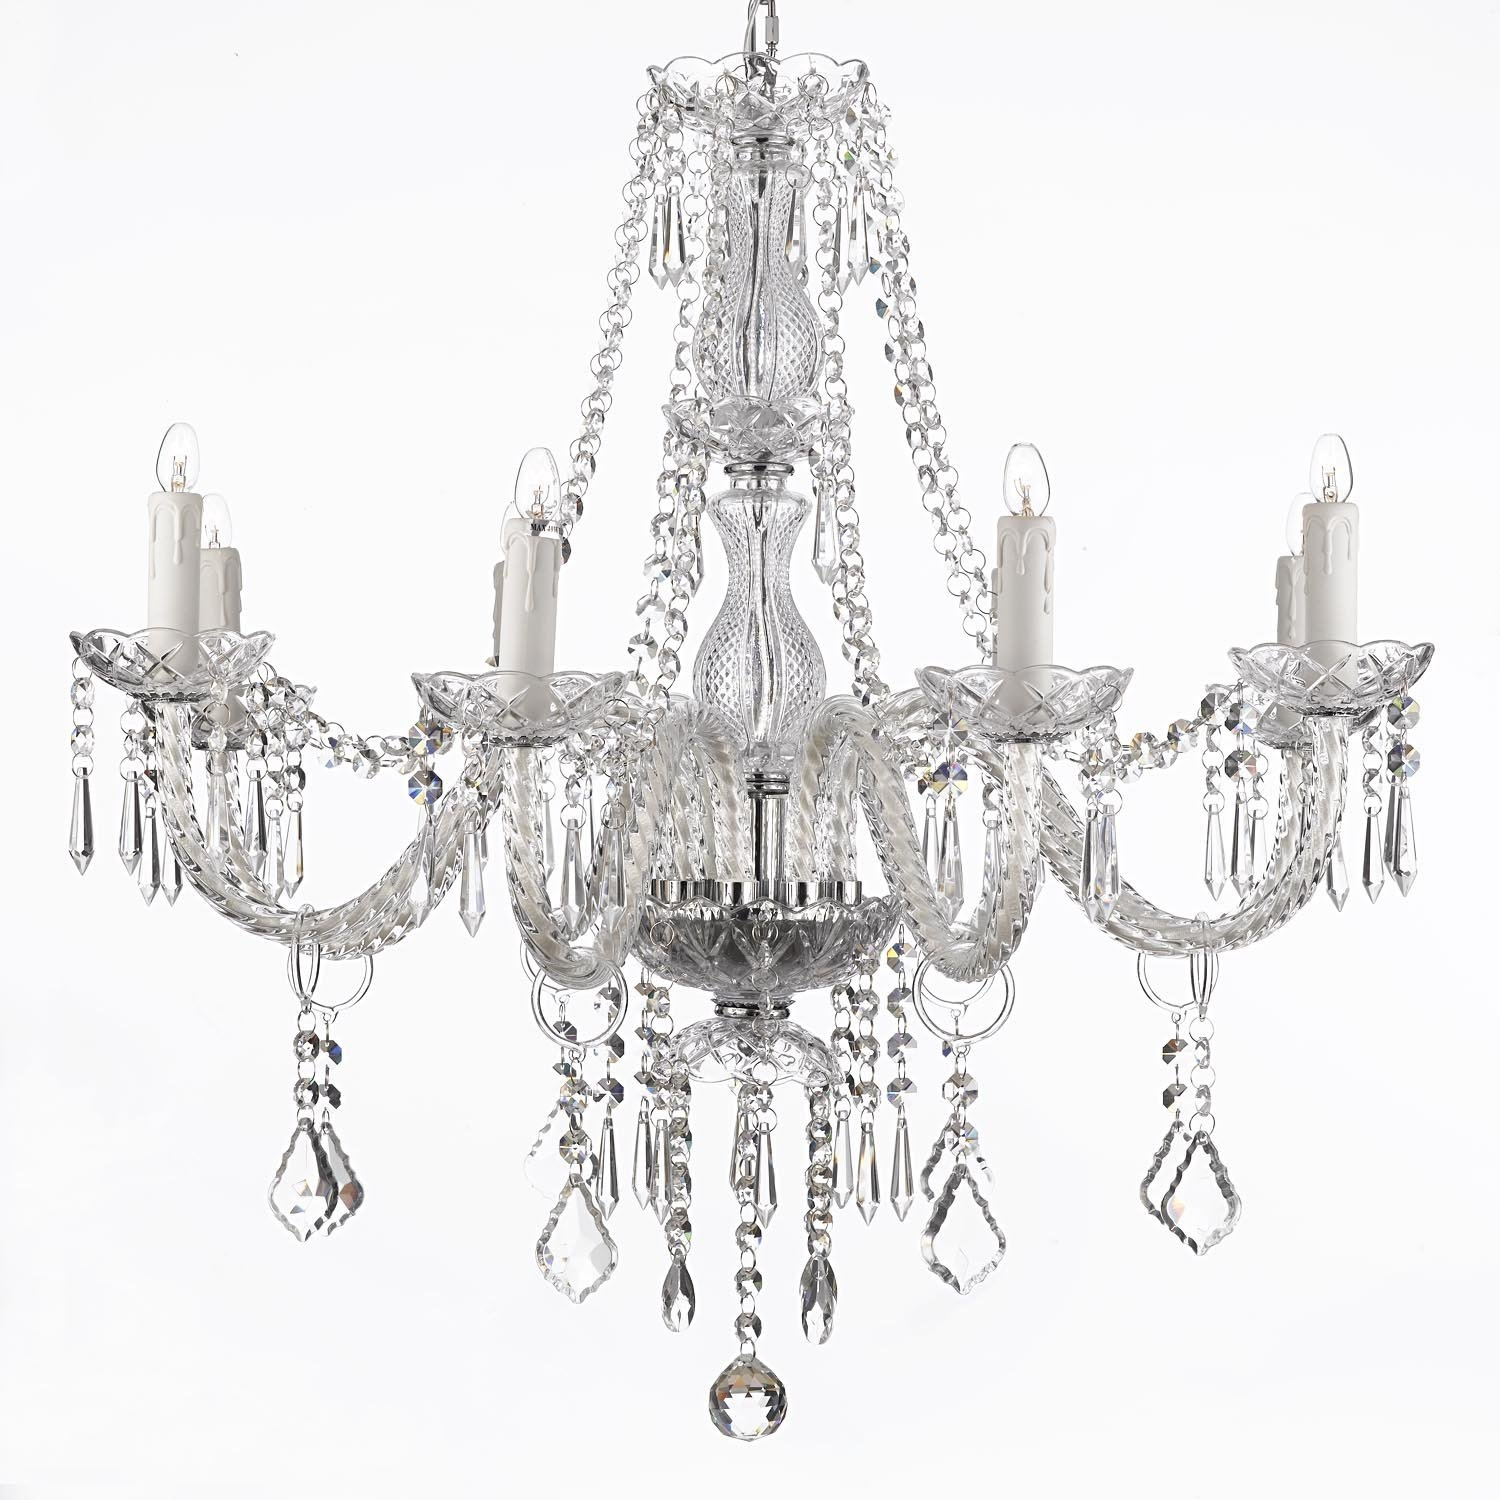 159 Crystal Chandelier Lighting 28ht X 28wd 8 Lights Fixture With Regard To Small Chandeliers For Low Ceilings (View 12 of 12)